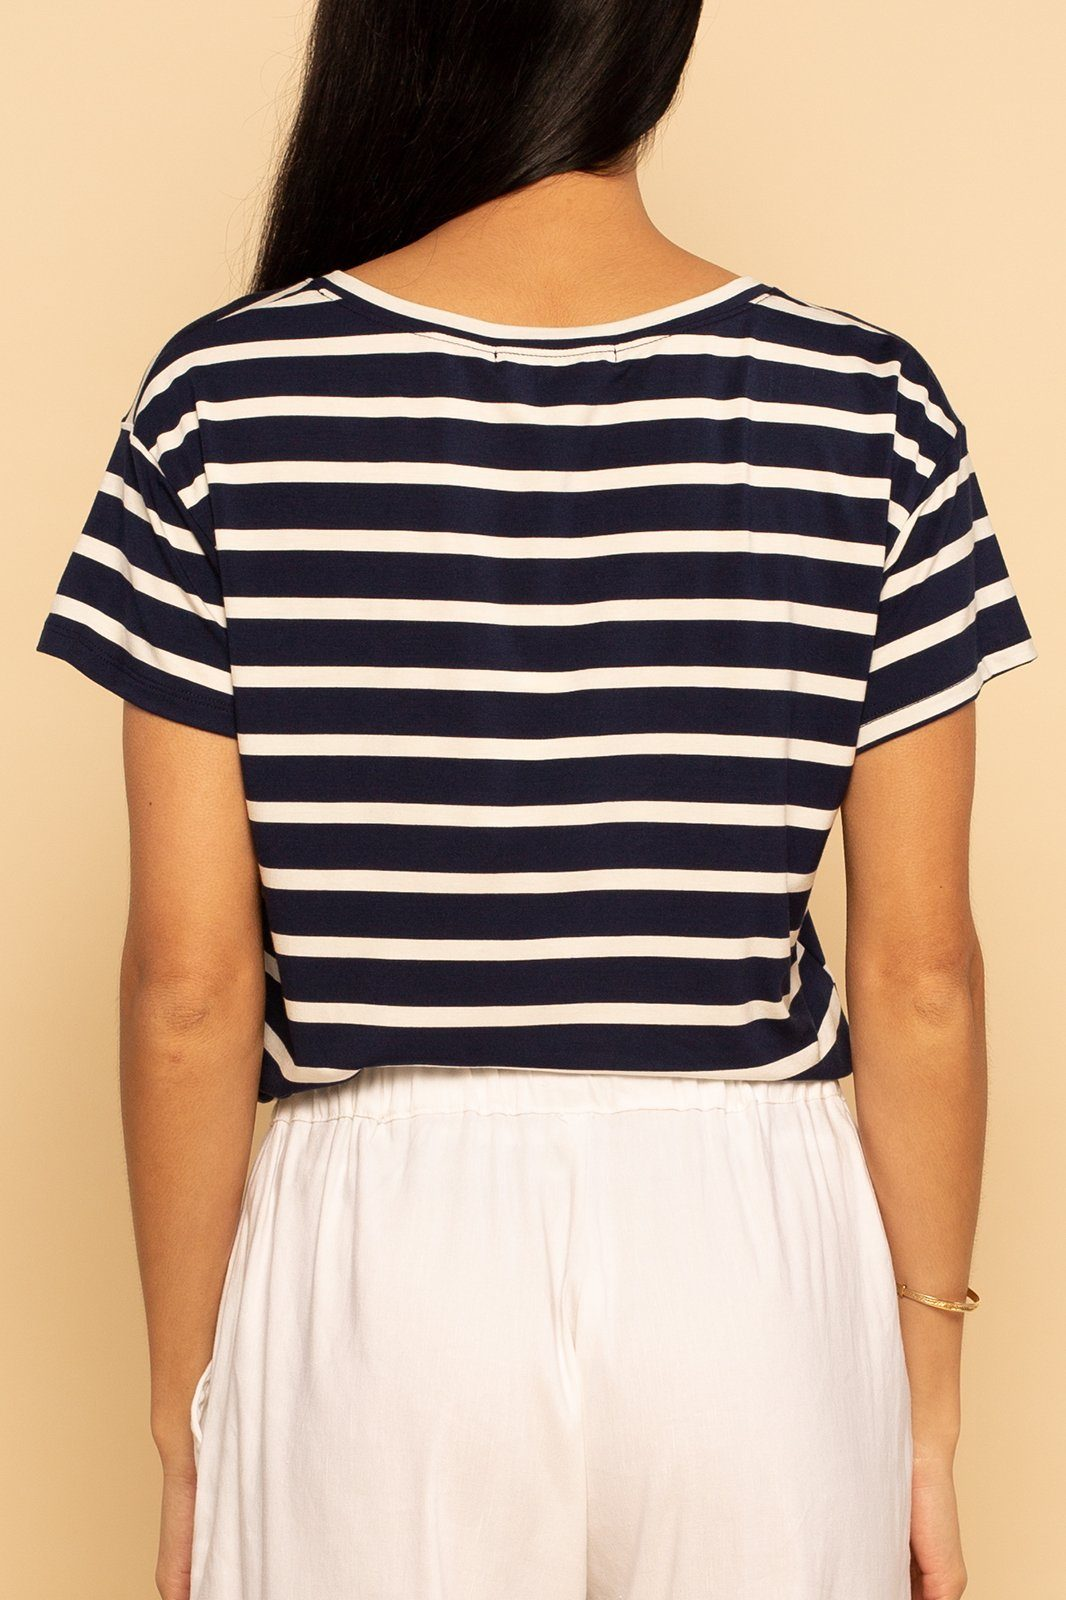 Pocket Tee - Navy Stripe - Shore